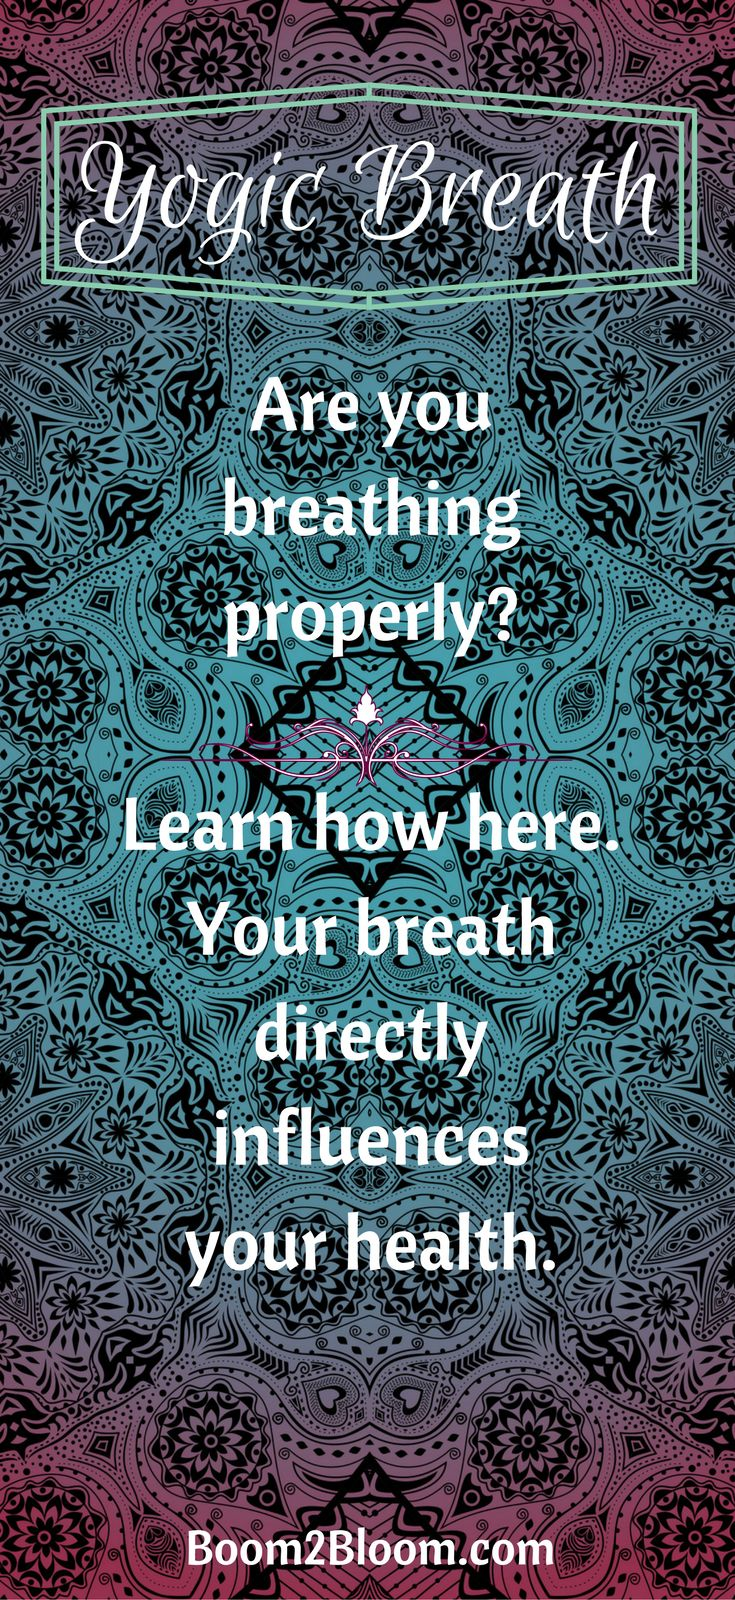 Yogic Breath-Learn how to breath properly to optimize the health benefits of this simple, yet life changing tool! #MentalHealth #HolisticHealth #AnxietyRelief #HelpfForAnxiety #PanicDisorder